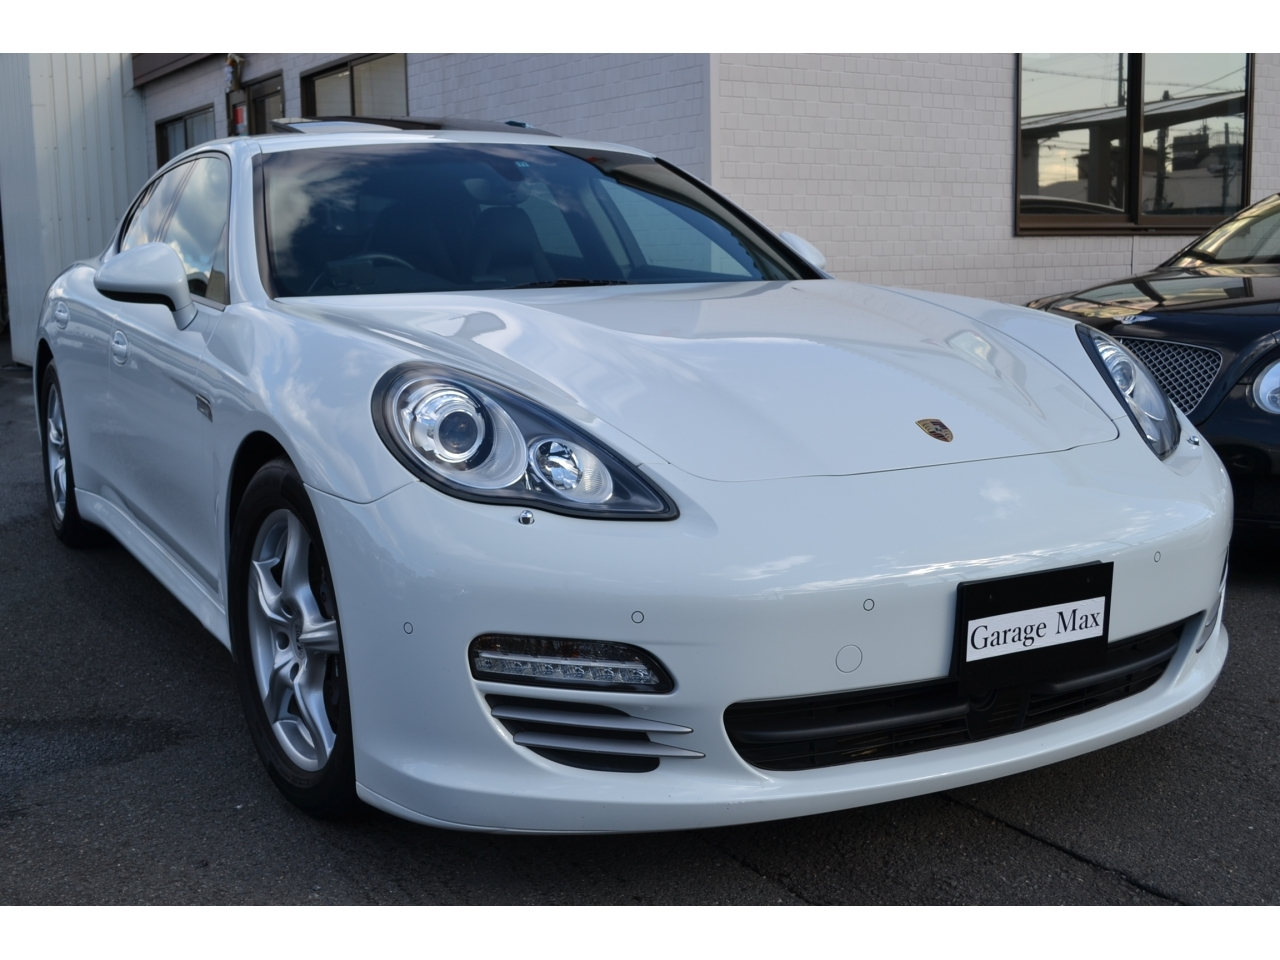 Buy used Porsche at Japanese auctions